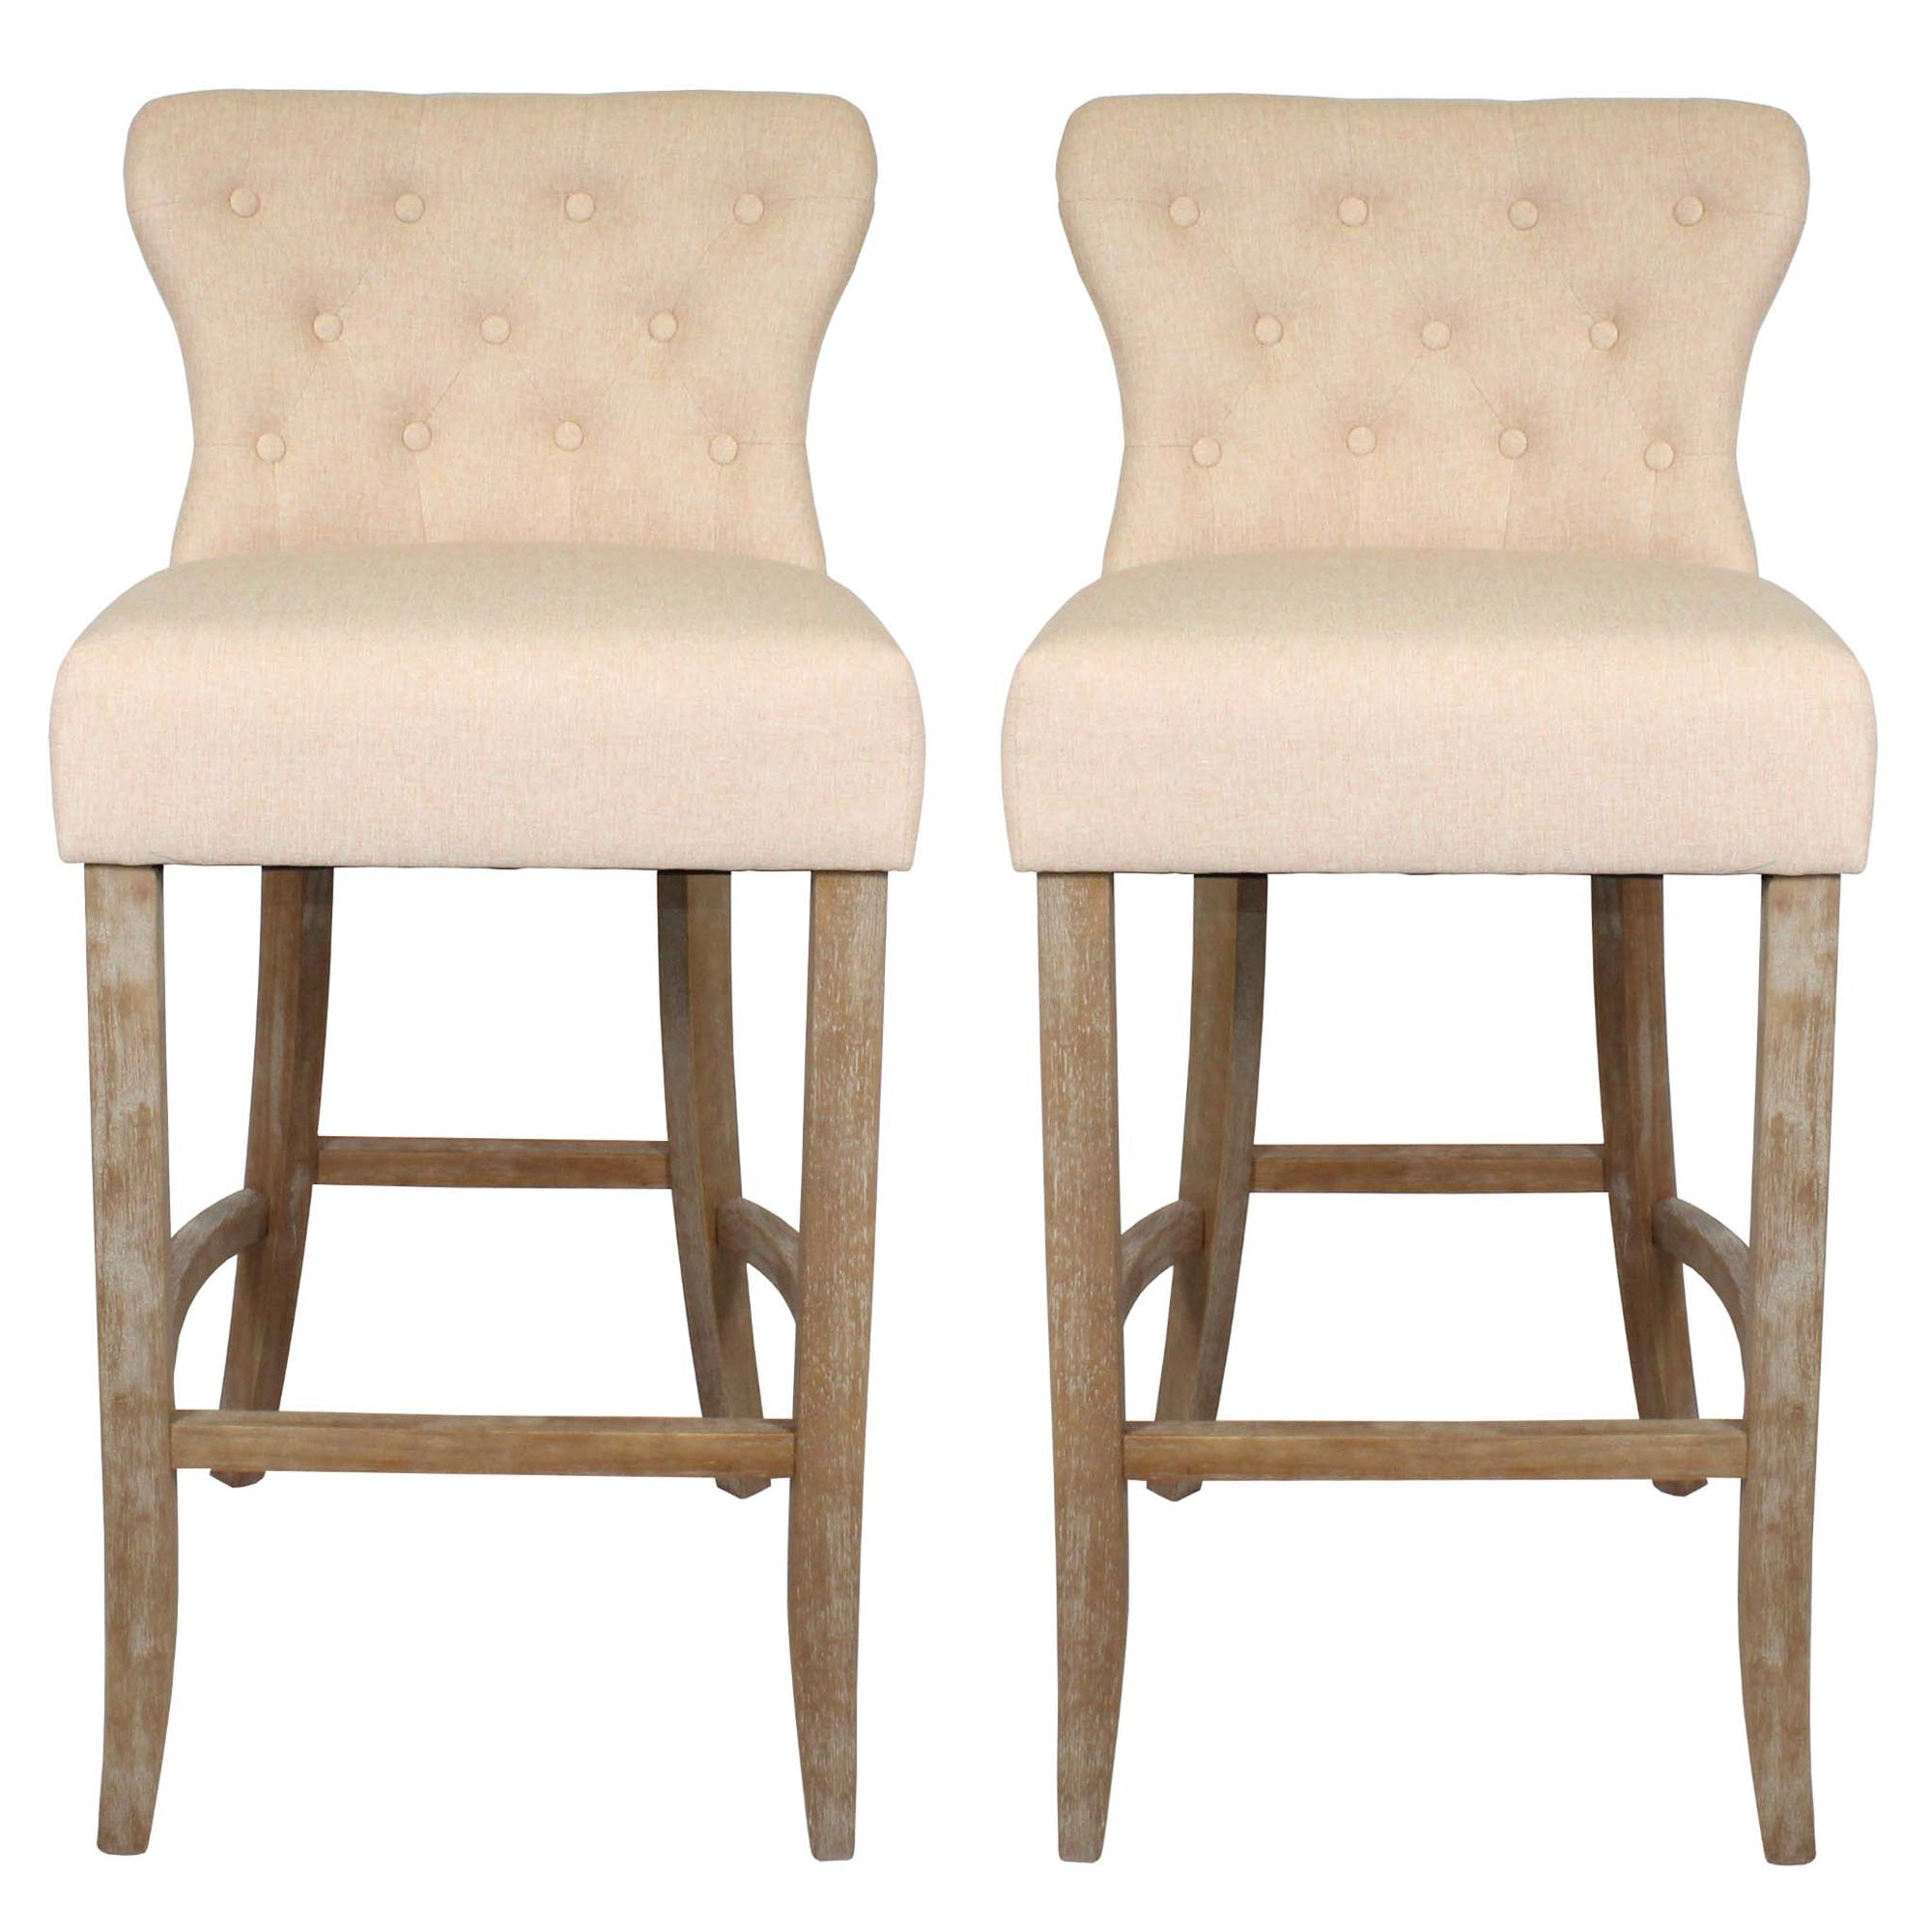 Baxter Bar Stools - Set of 2